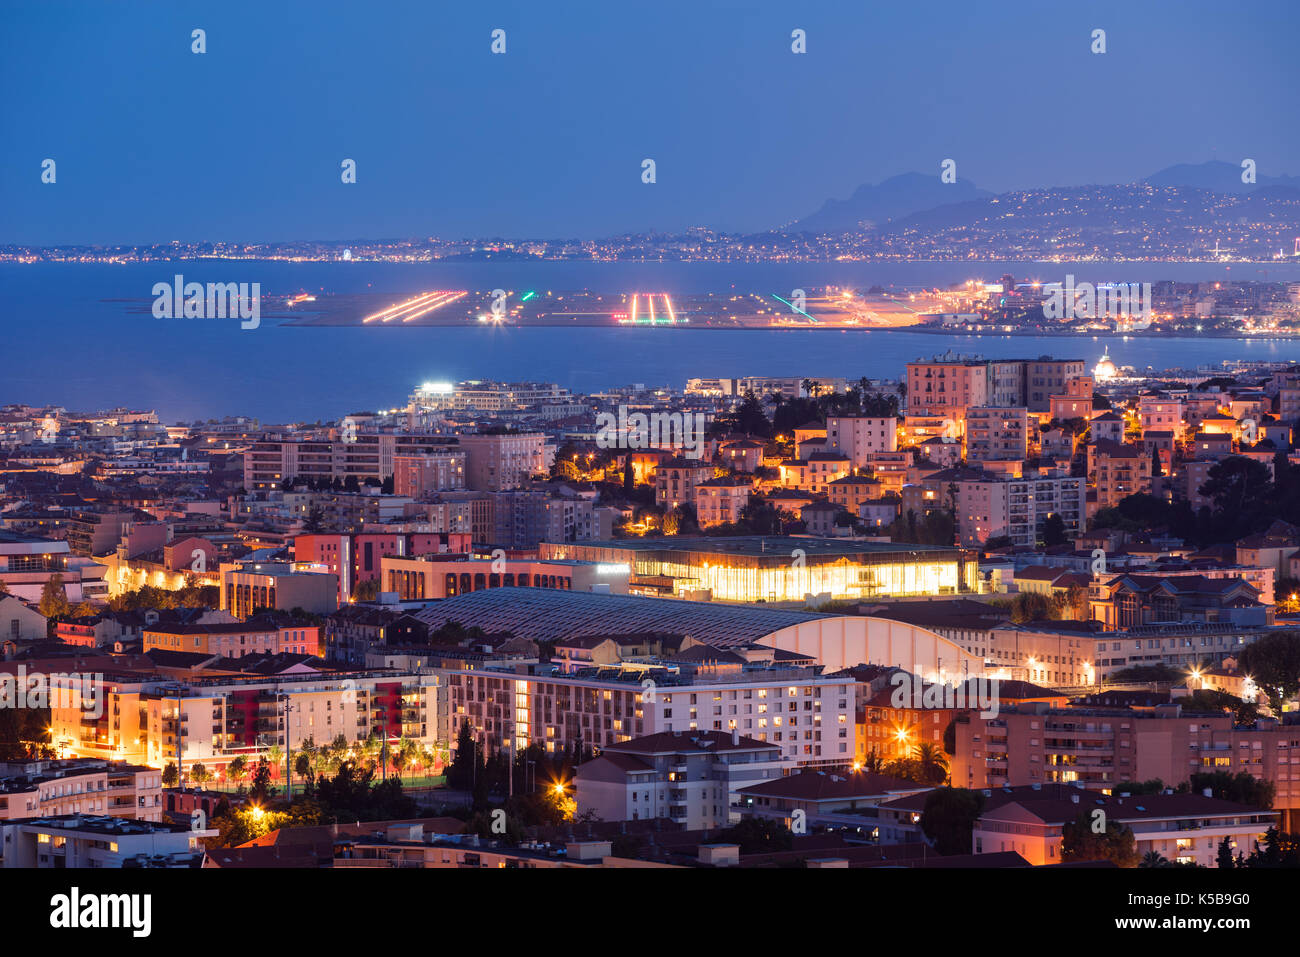 Elevated view of rooftops of Nice at twilight with the airport runways in the distance. French Riviera, Provence-Alpes-Cote d'Azur, France - Stock Image